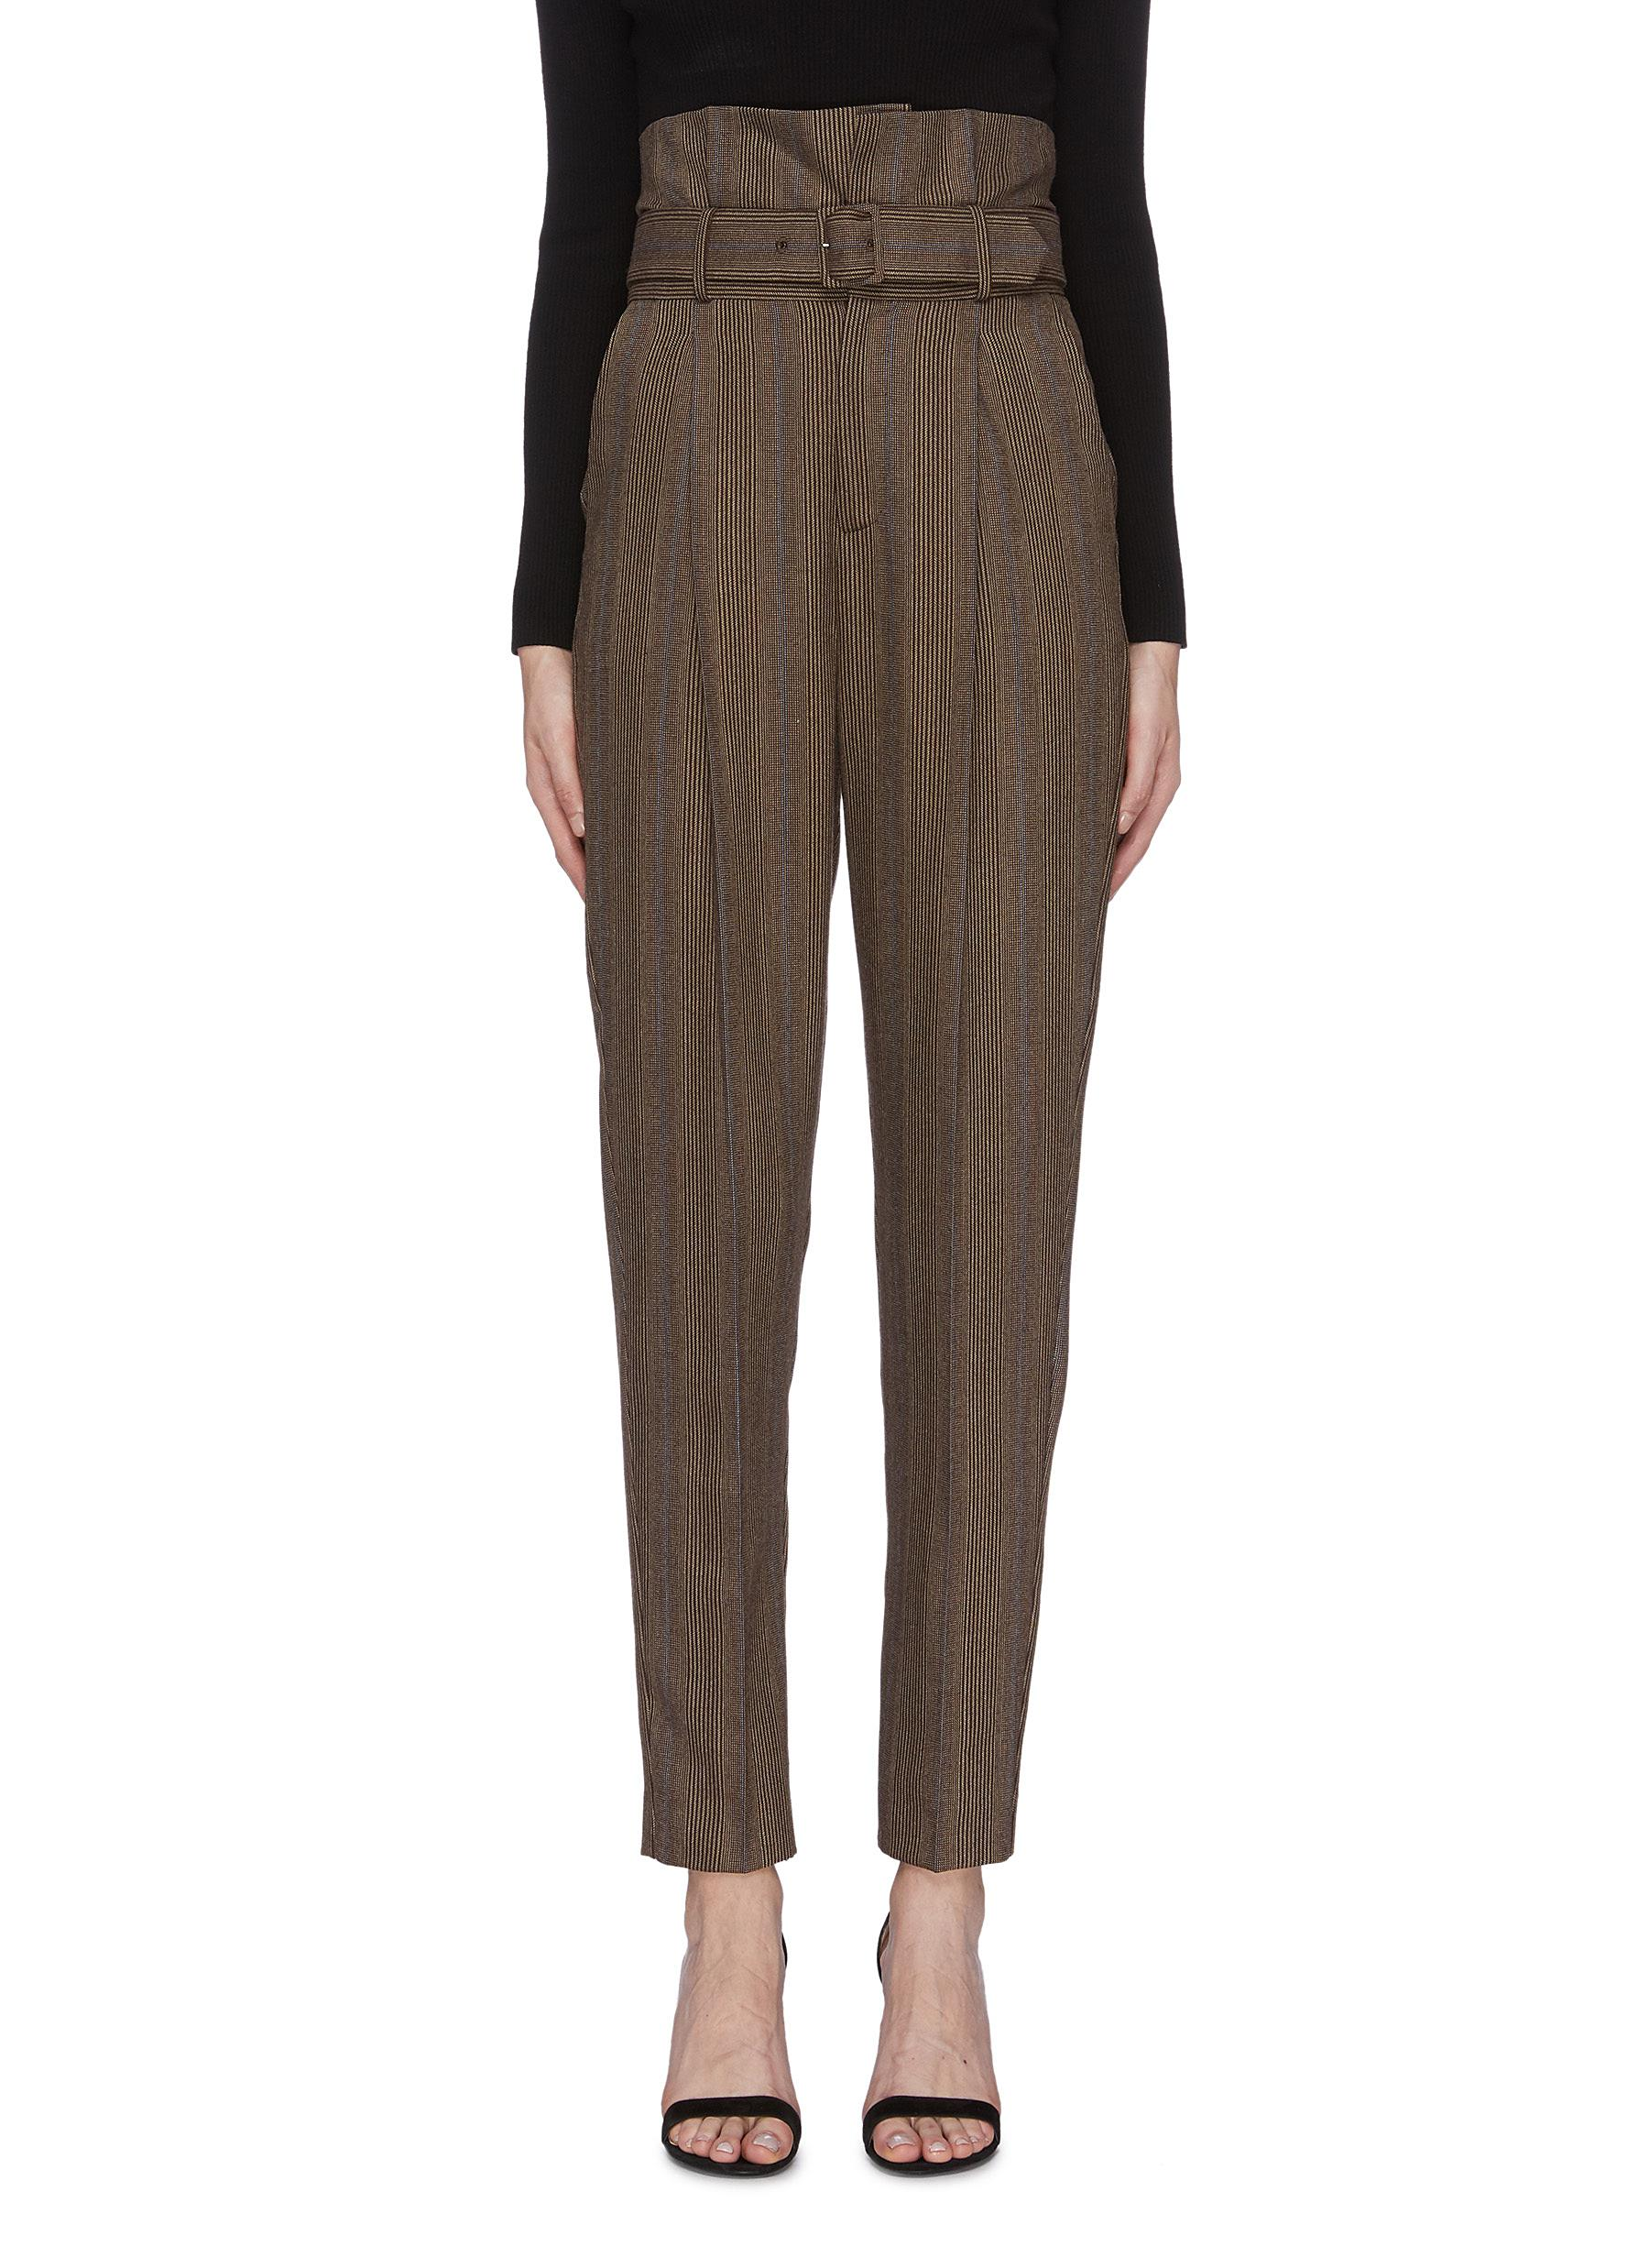 Alloisa belted pinstripe pants by Equipment